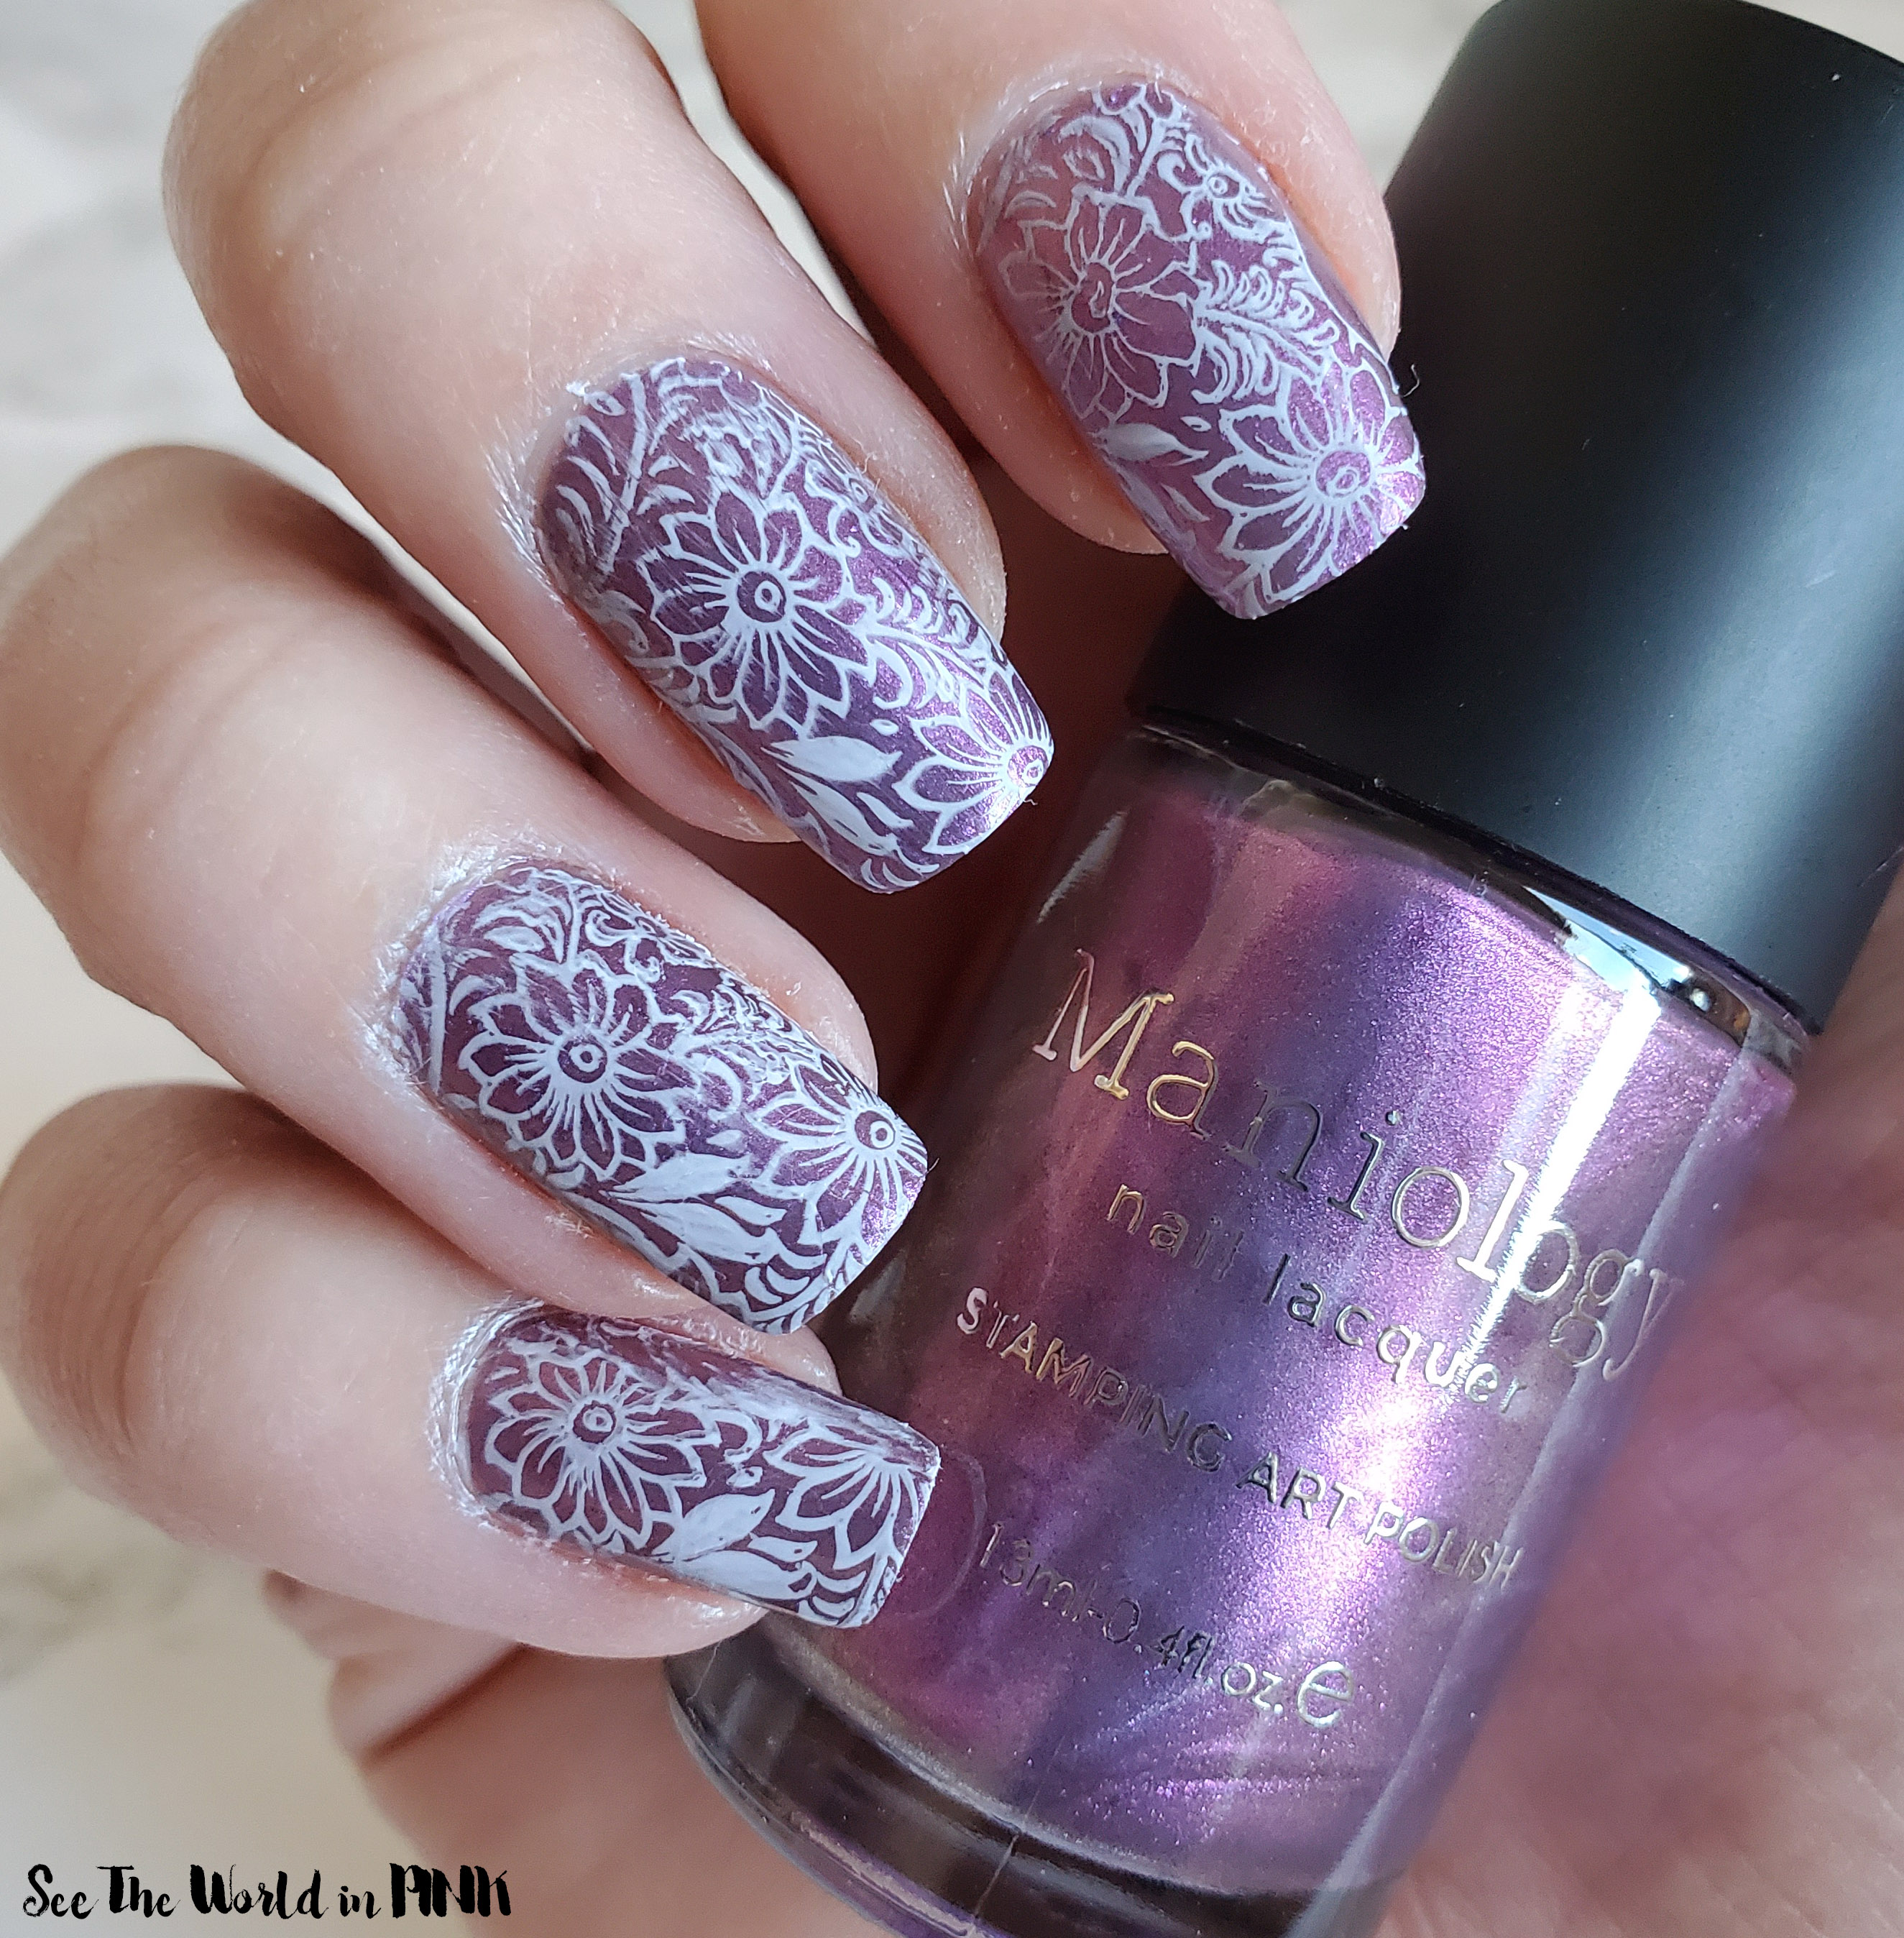 Manicure Monday - Purple Flower Stamped Nails